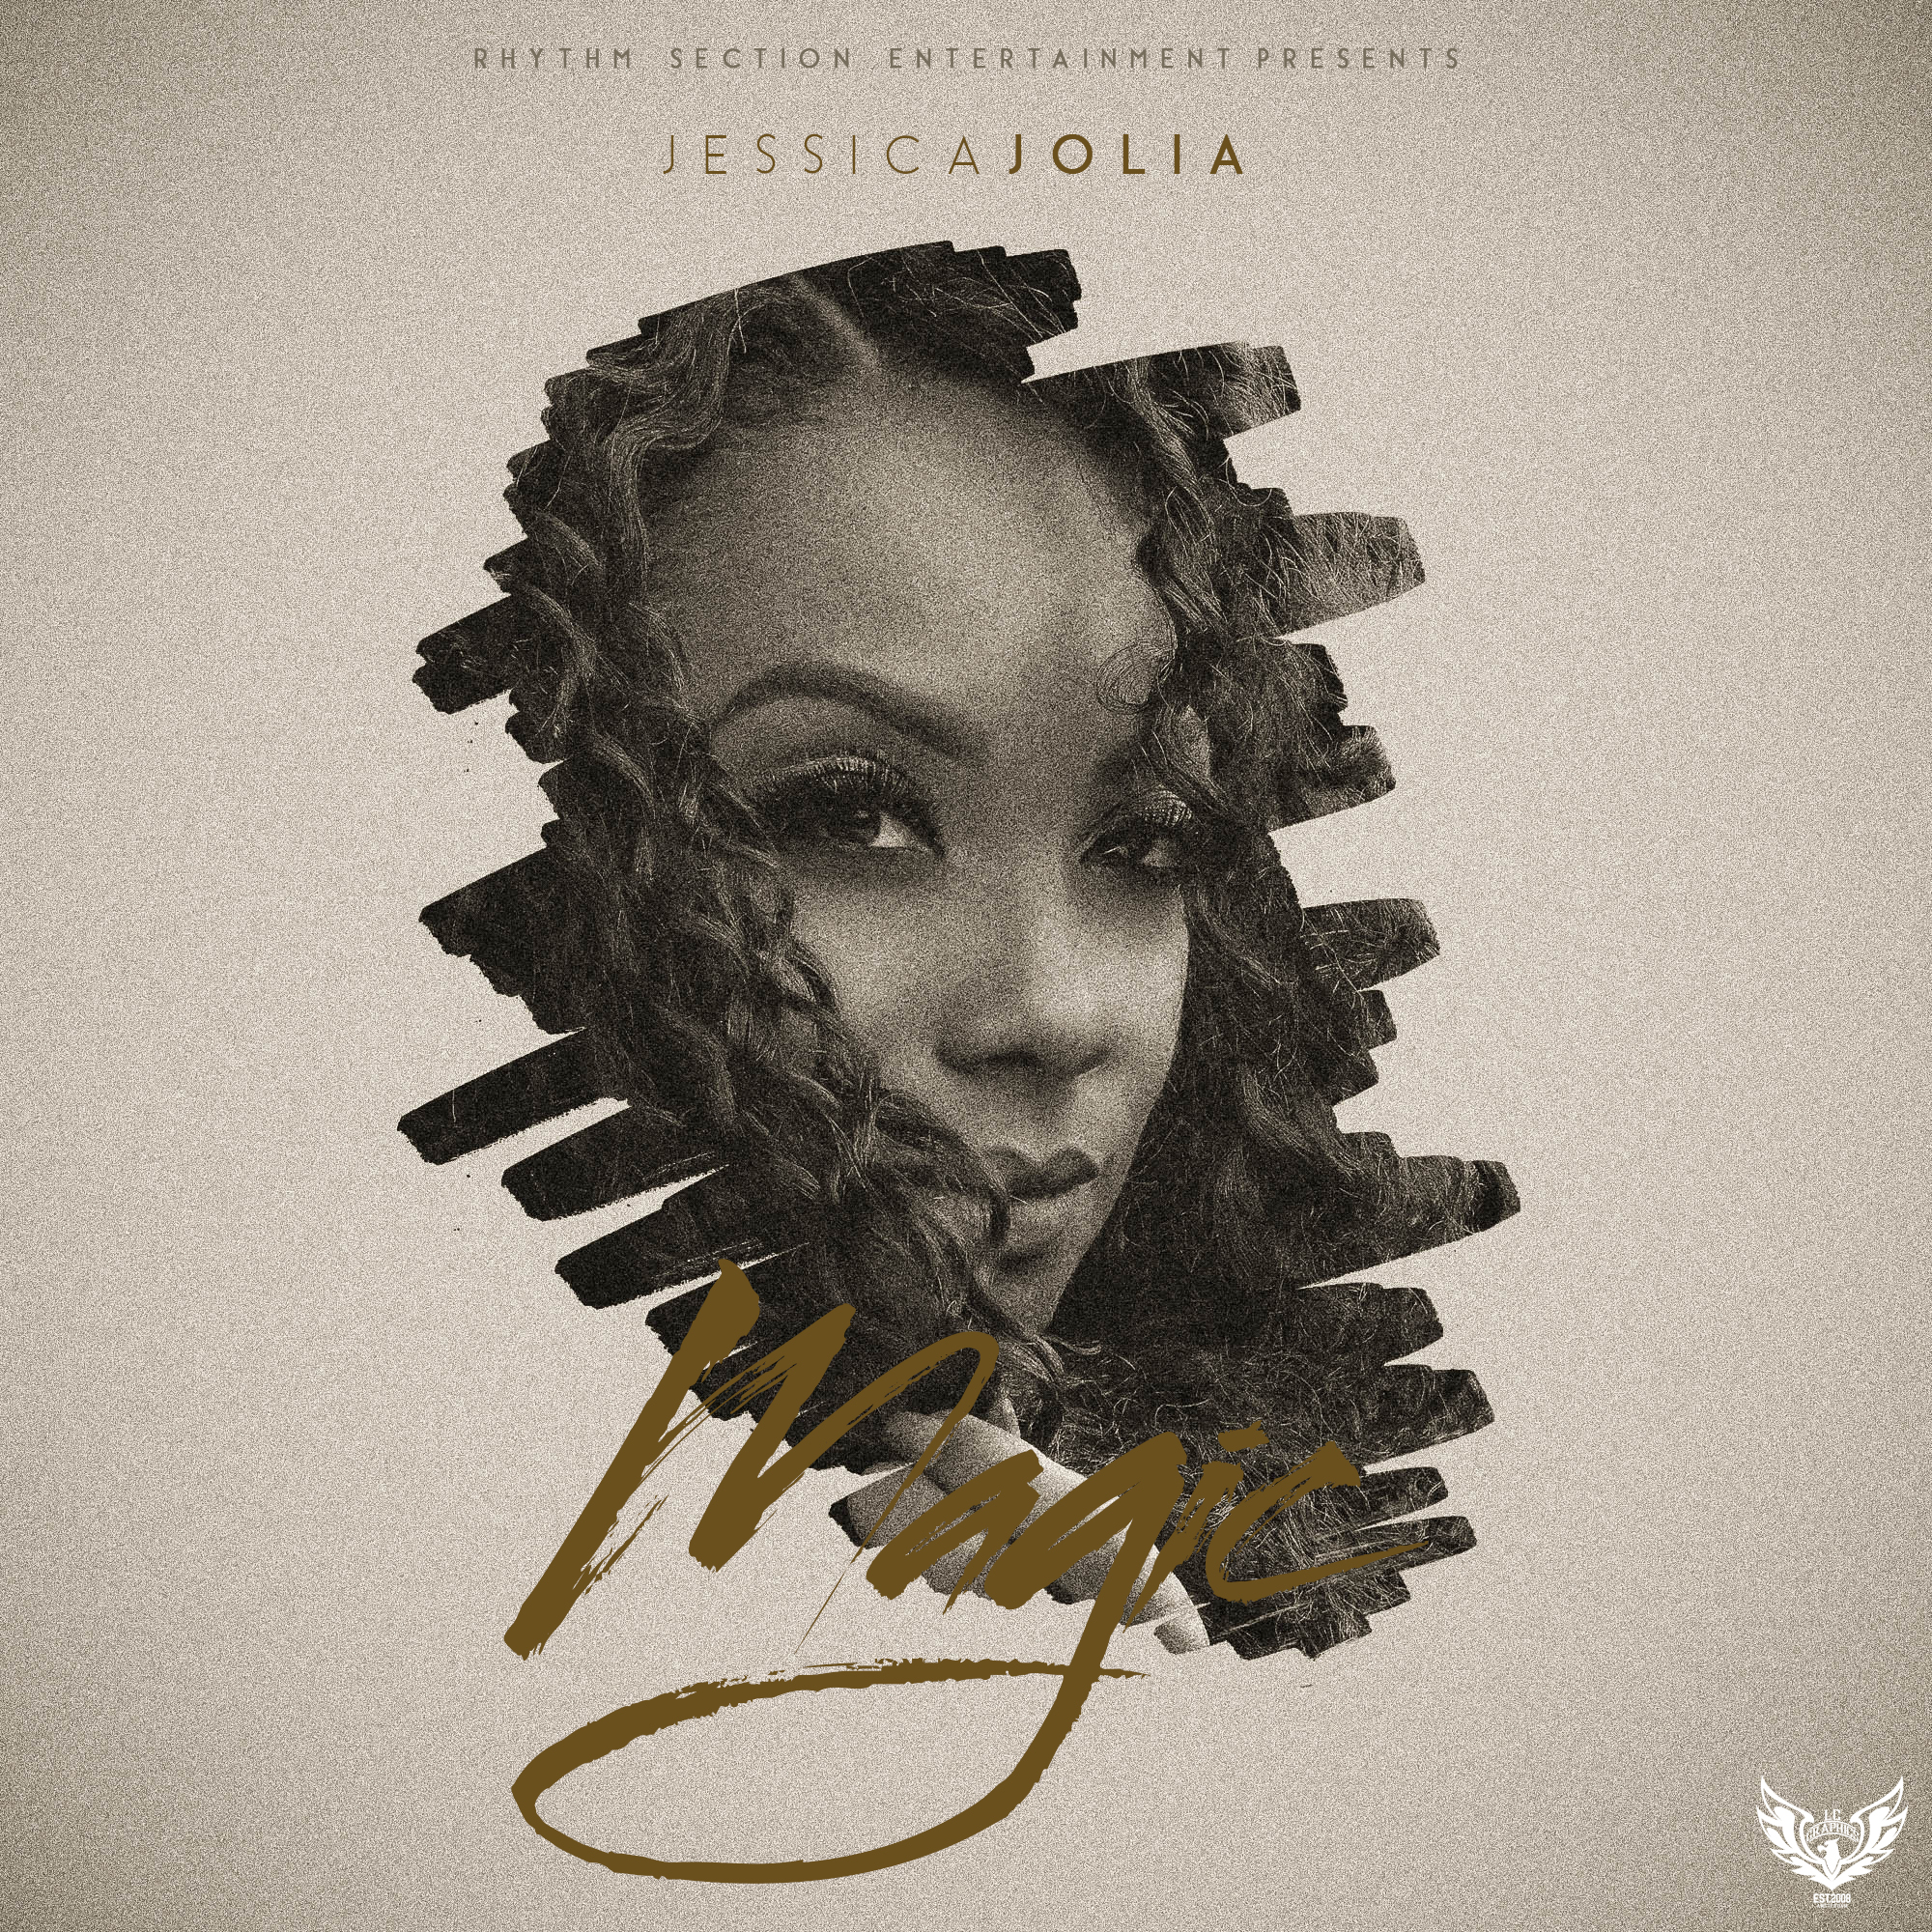 Jessica Jolia - Magic (Tweet cover) fan cover art (byLCGraphics)